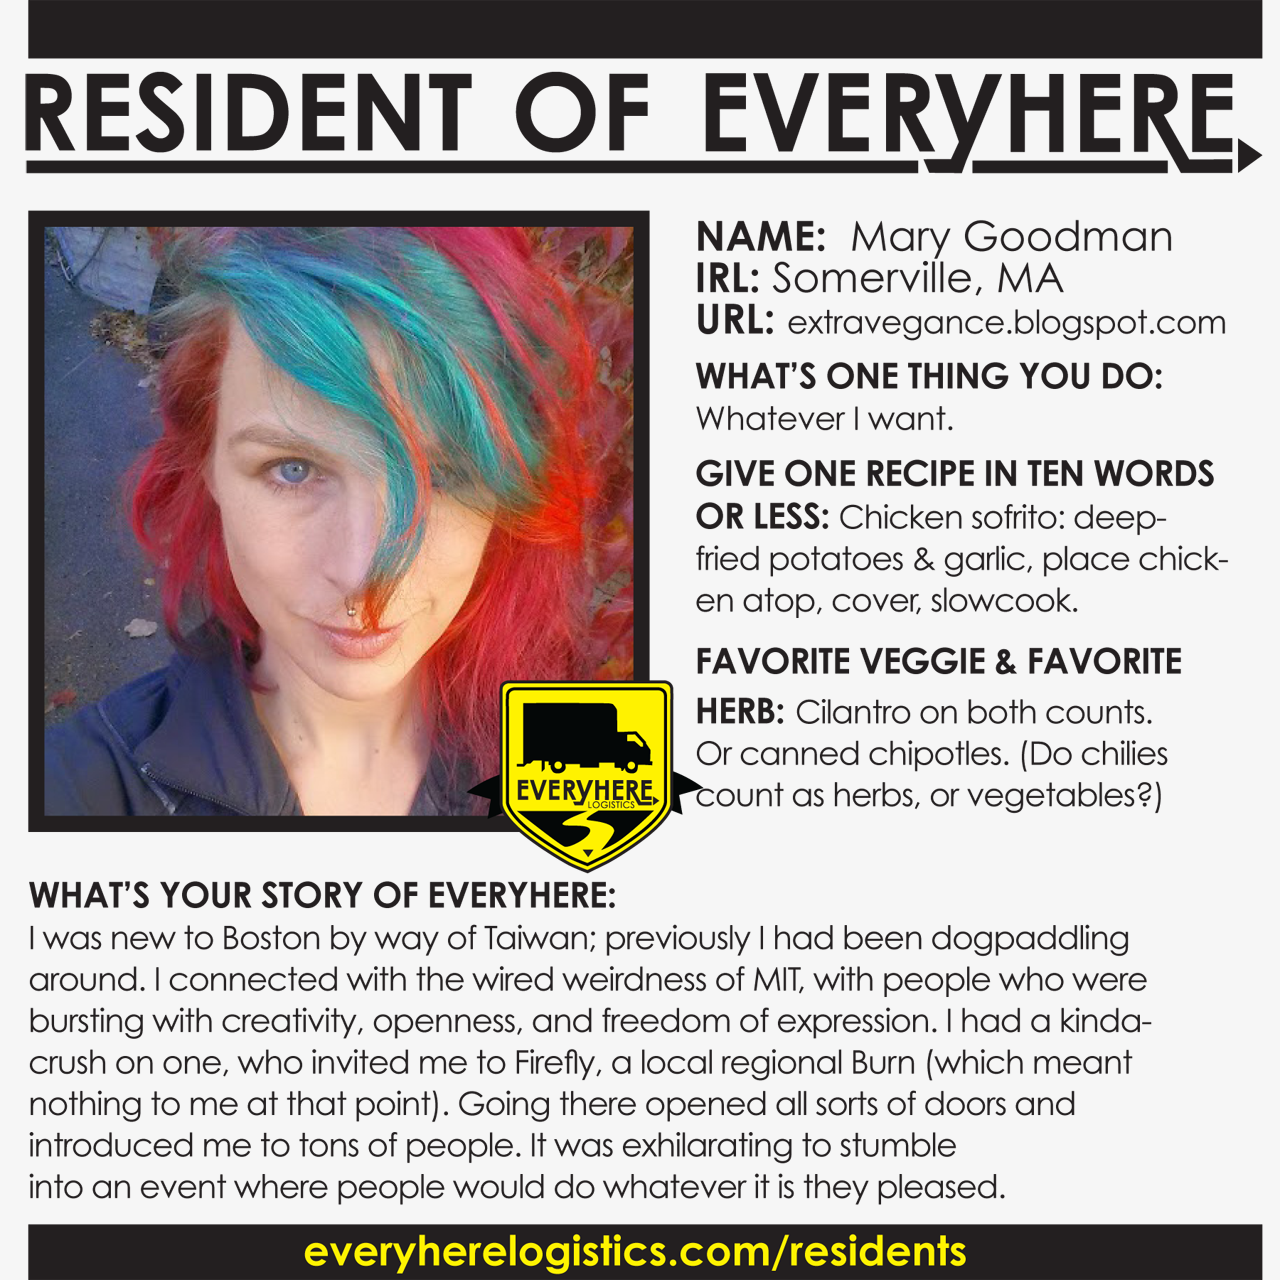 Resident of Everyhere - Mary Goodman